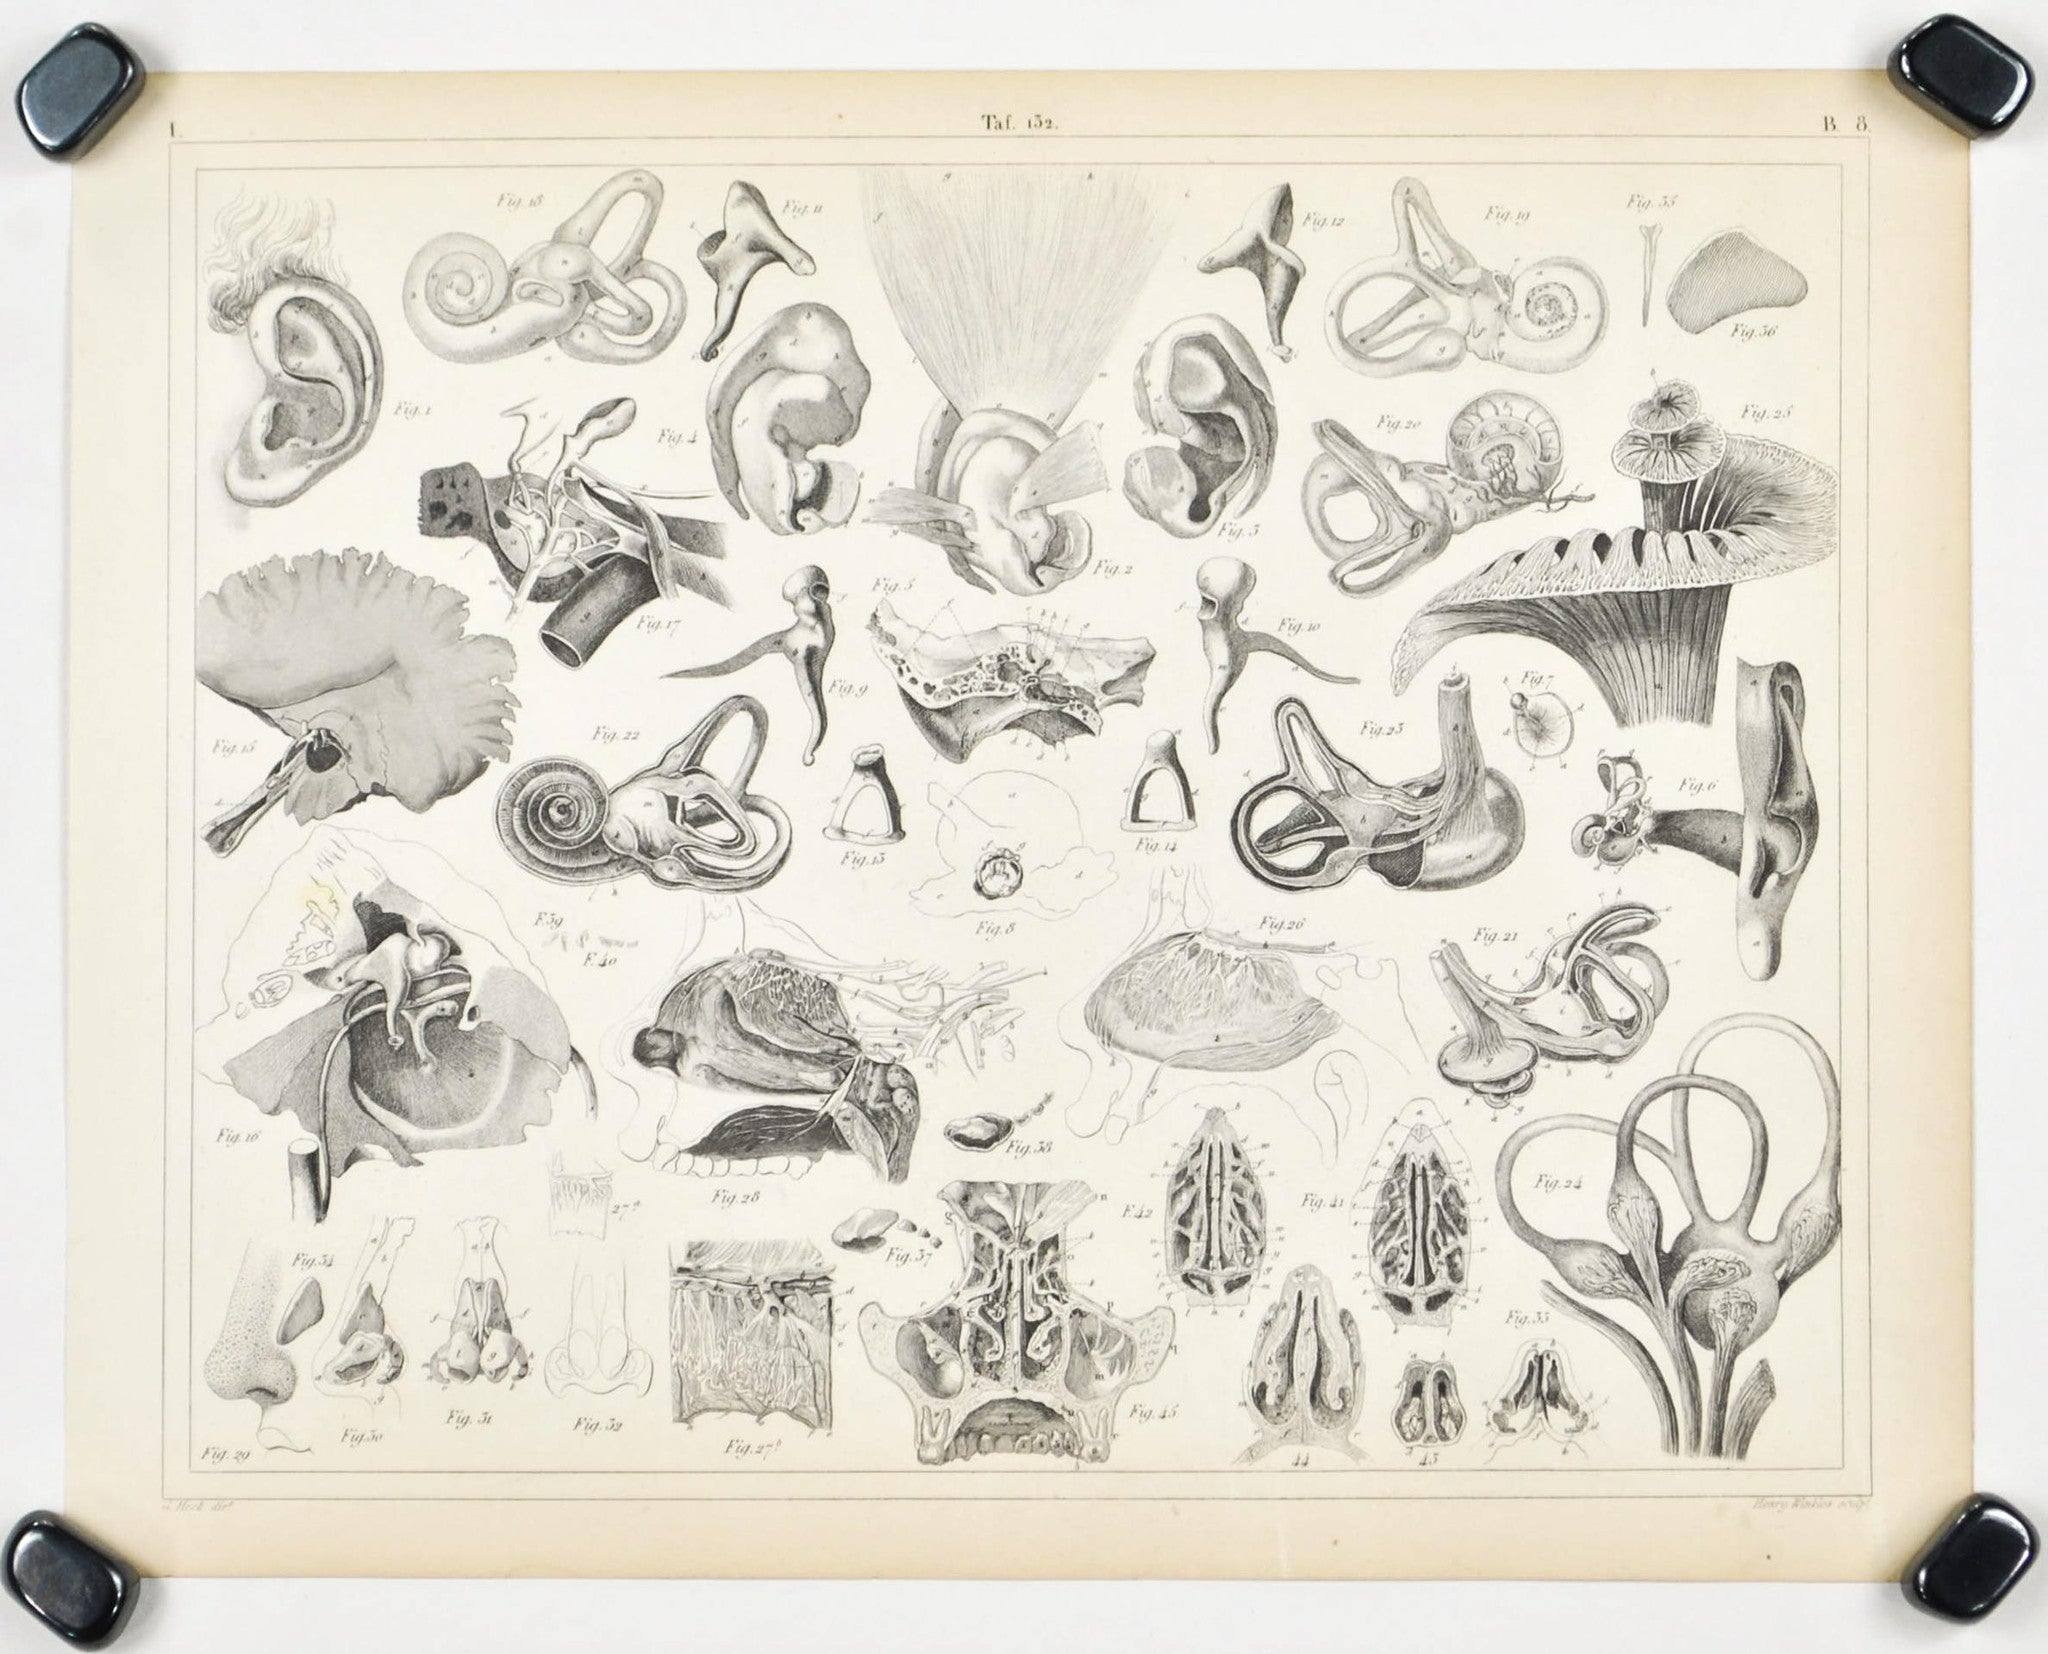 Human Ear Nose Antique Anatomy Print 1857 - Historic Accents